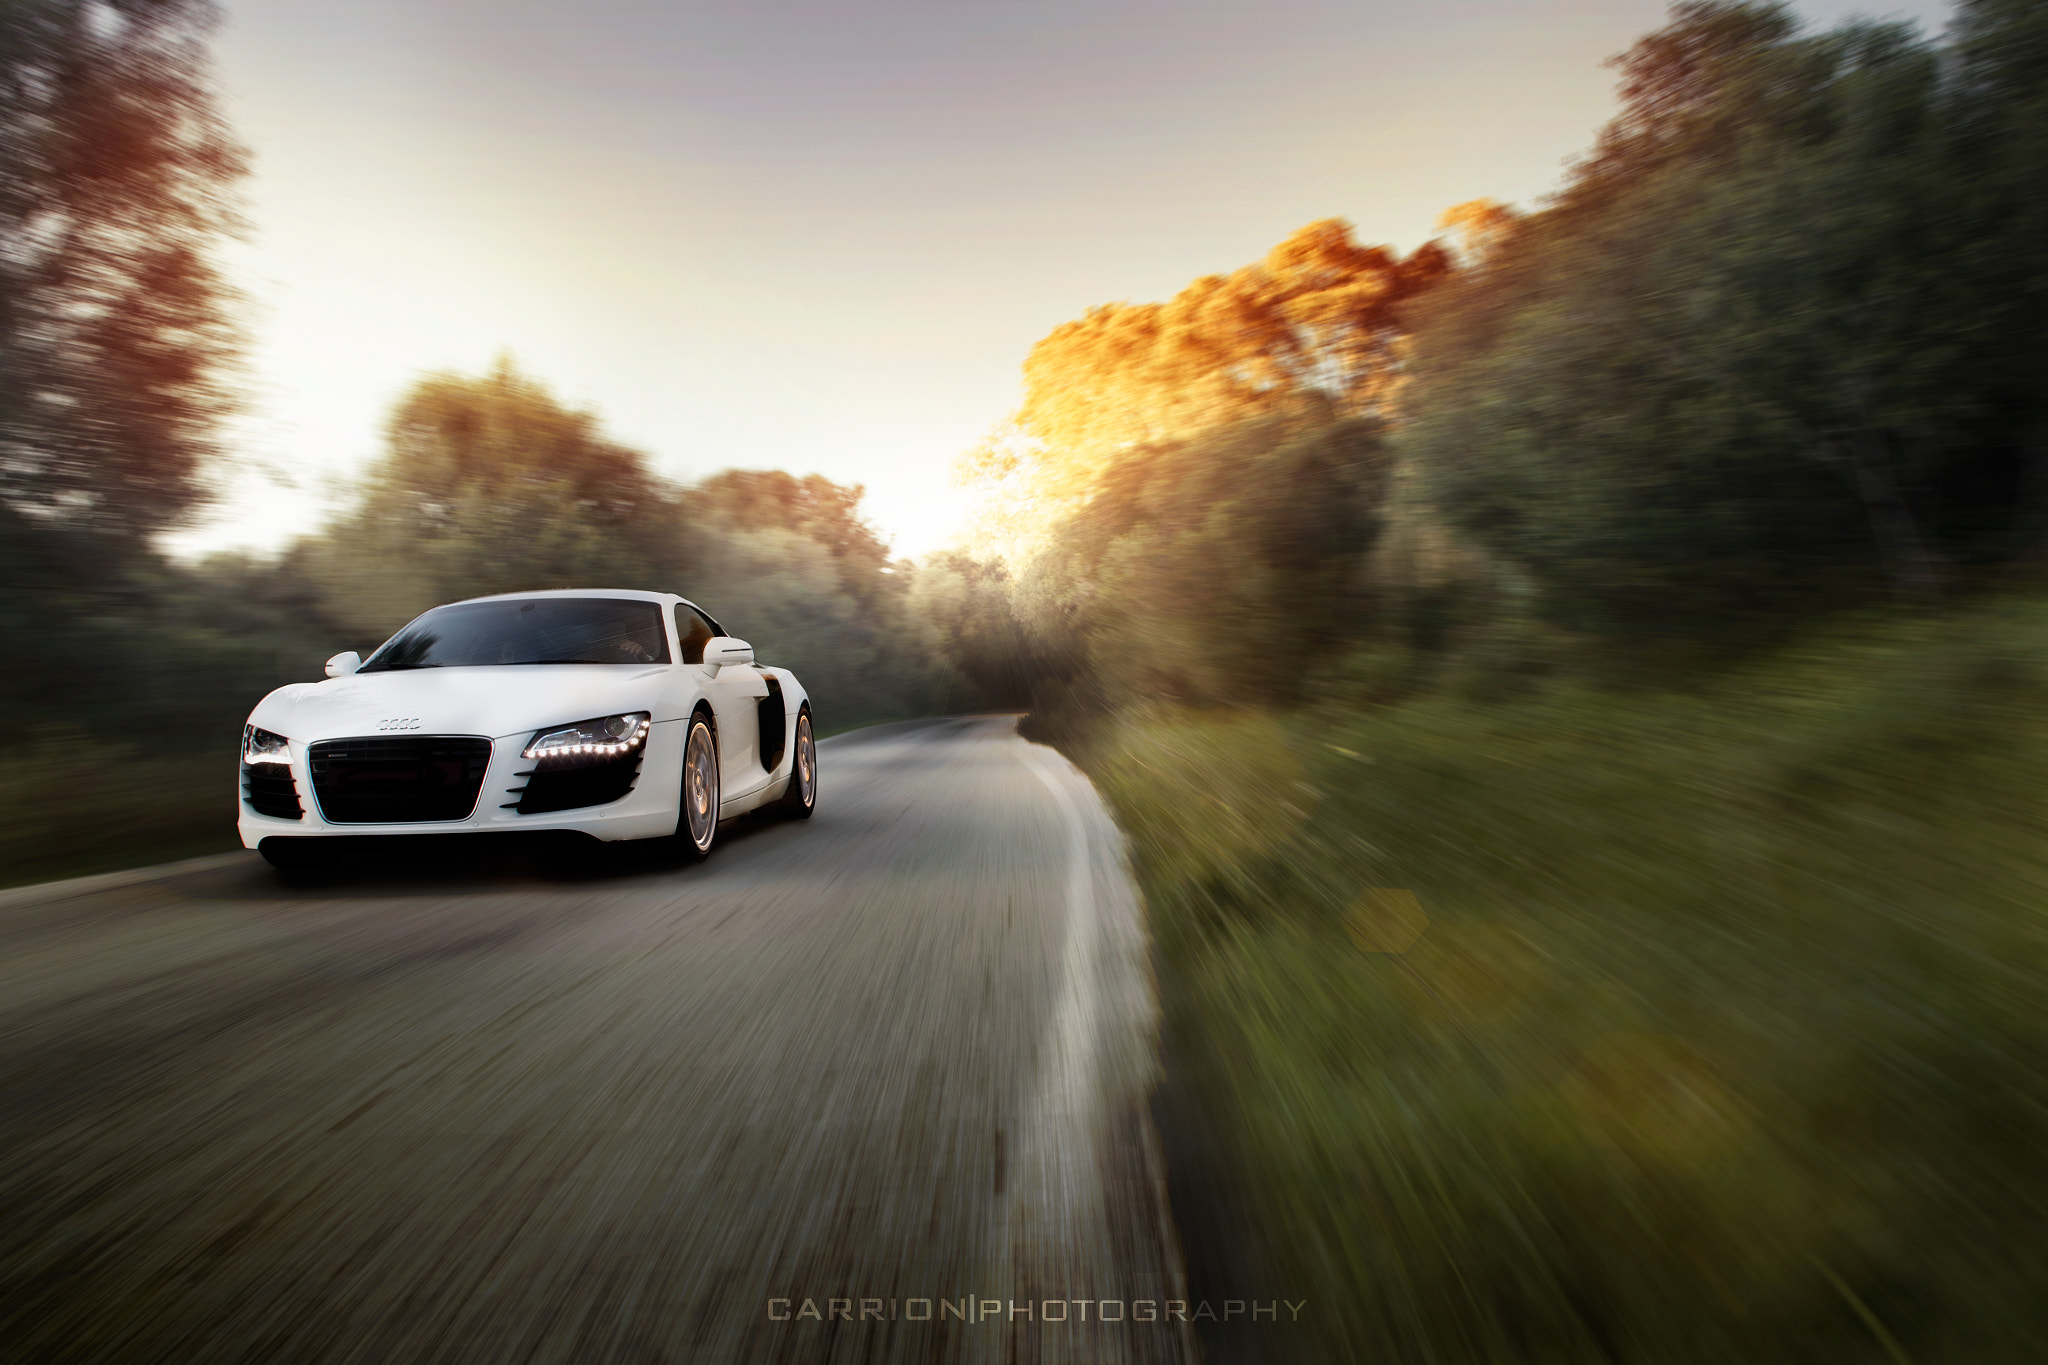 Photograph Audi R8 by JJCarrion  on 500px